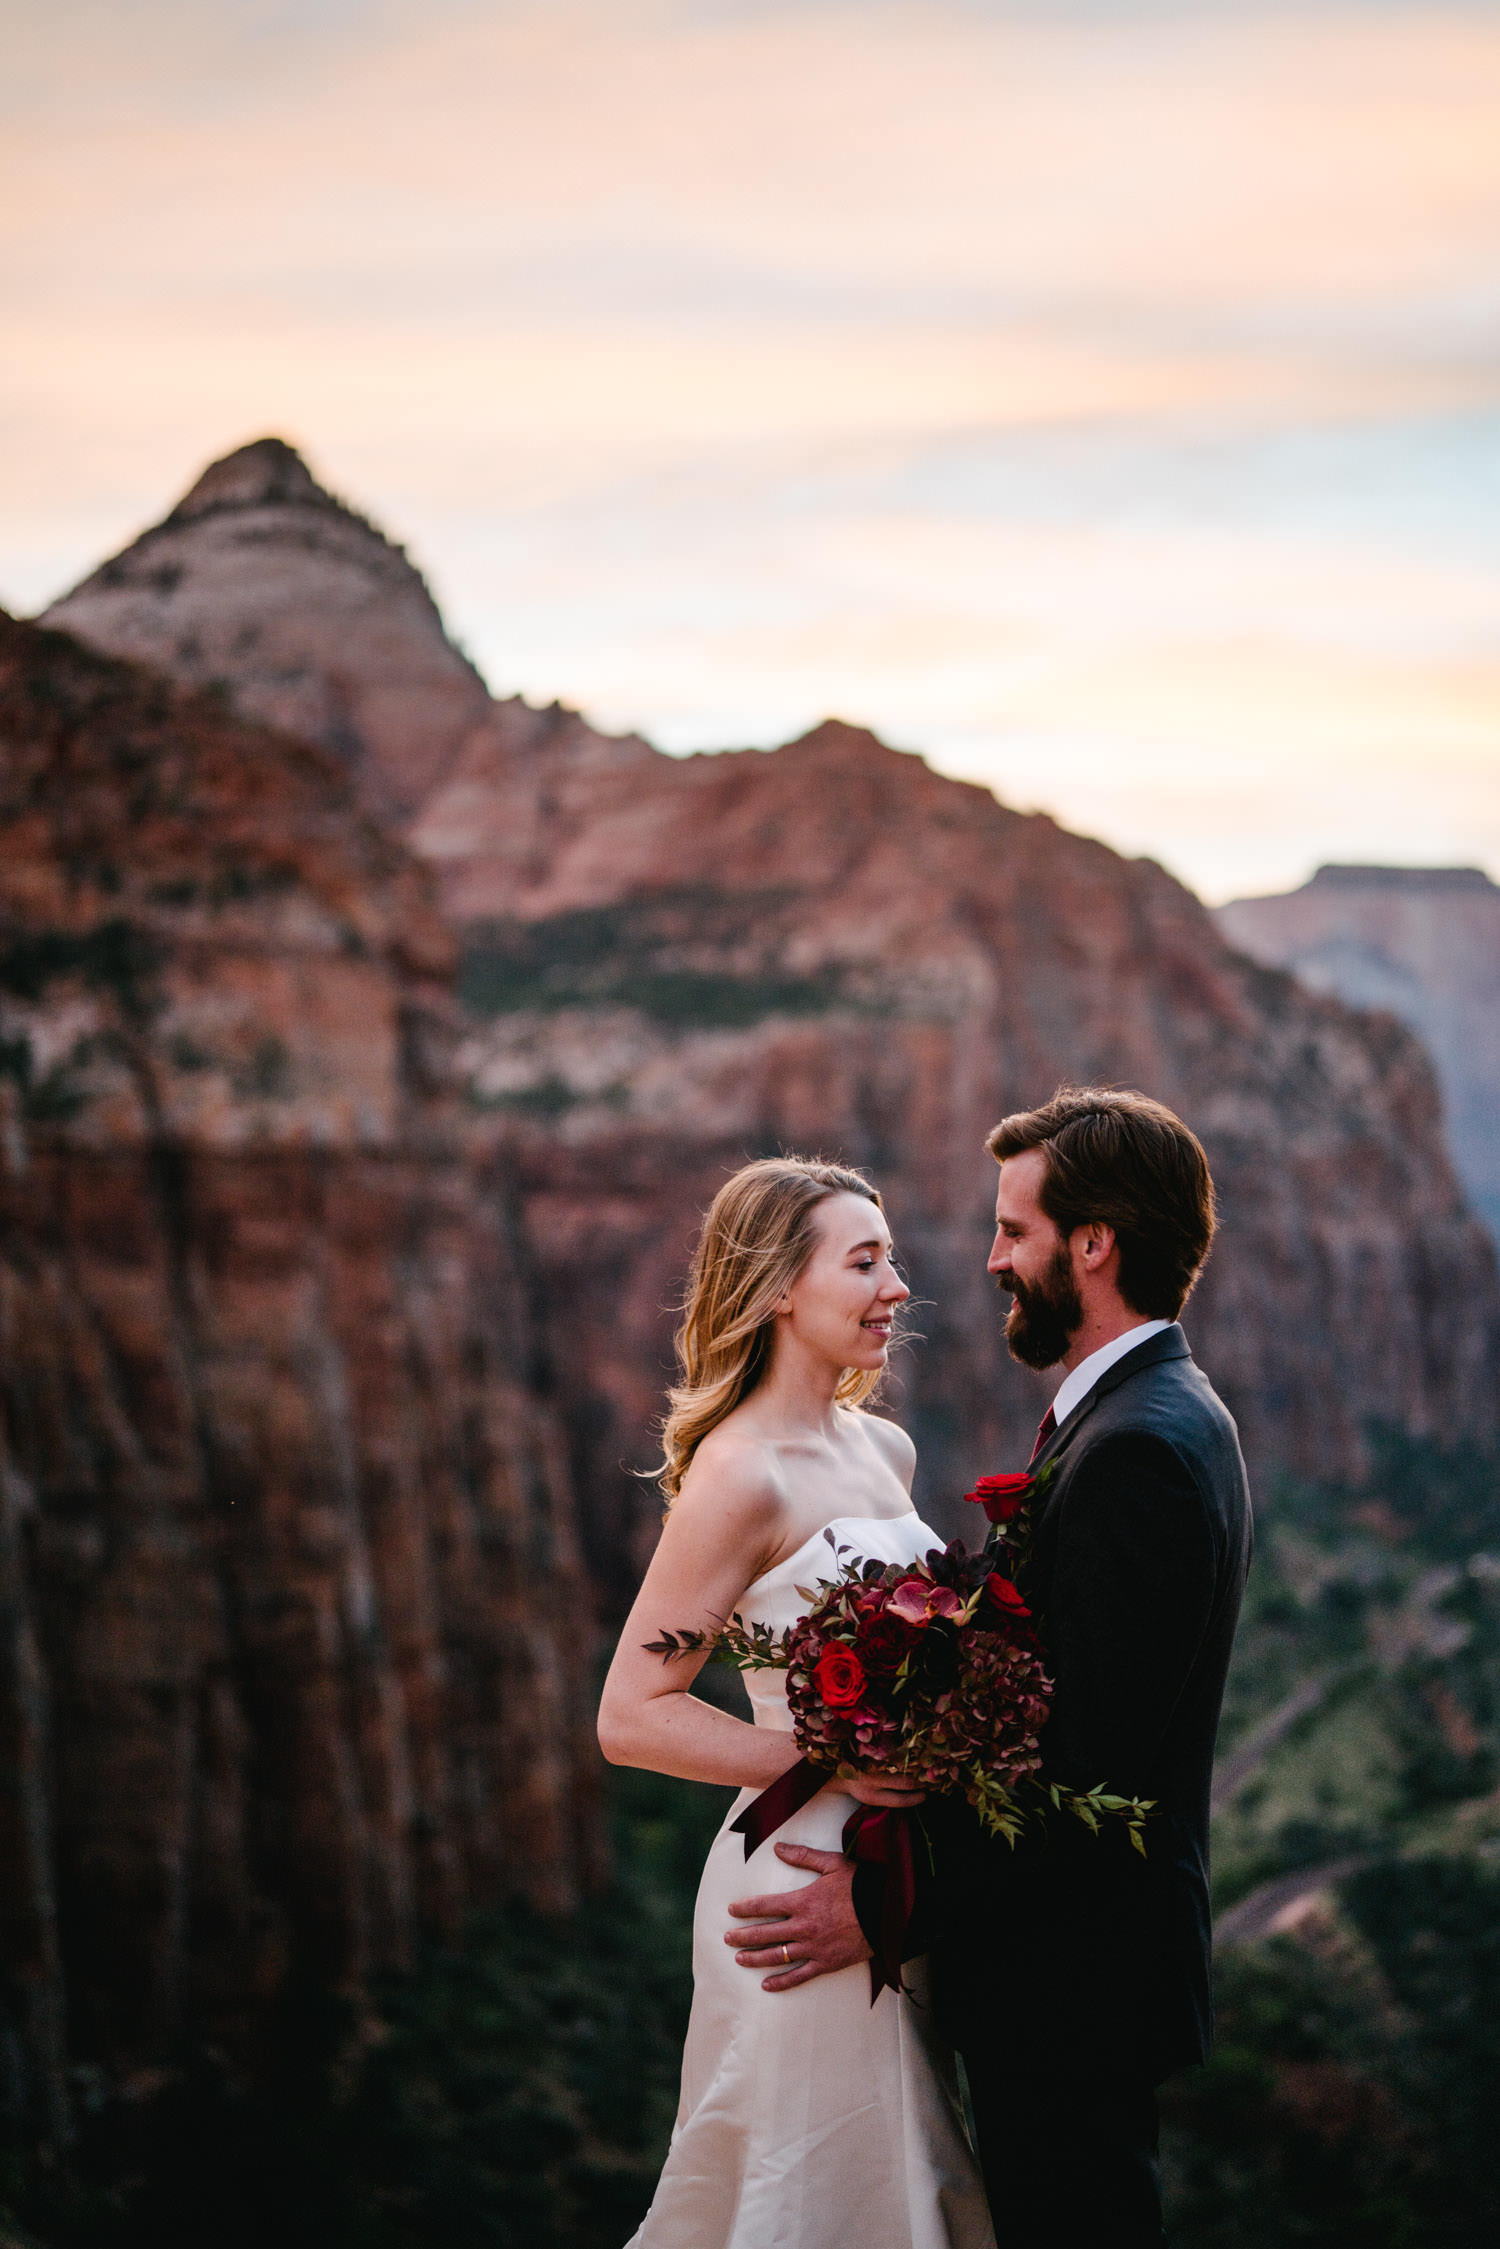 zionnationalpark_utah_destinationweddingphotographer_austendiamondphotography-15